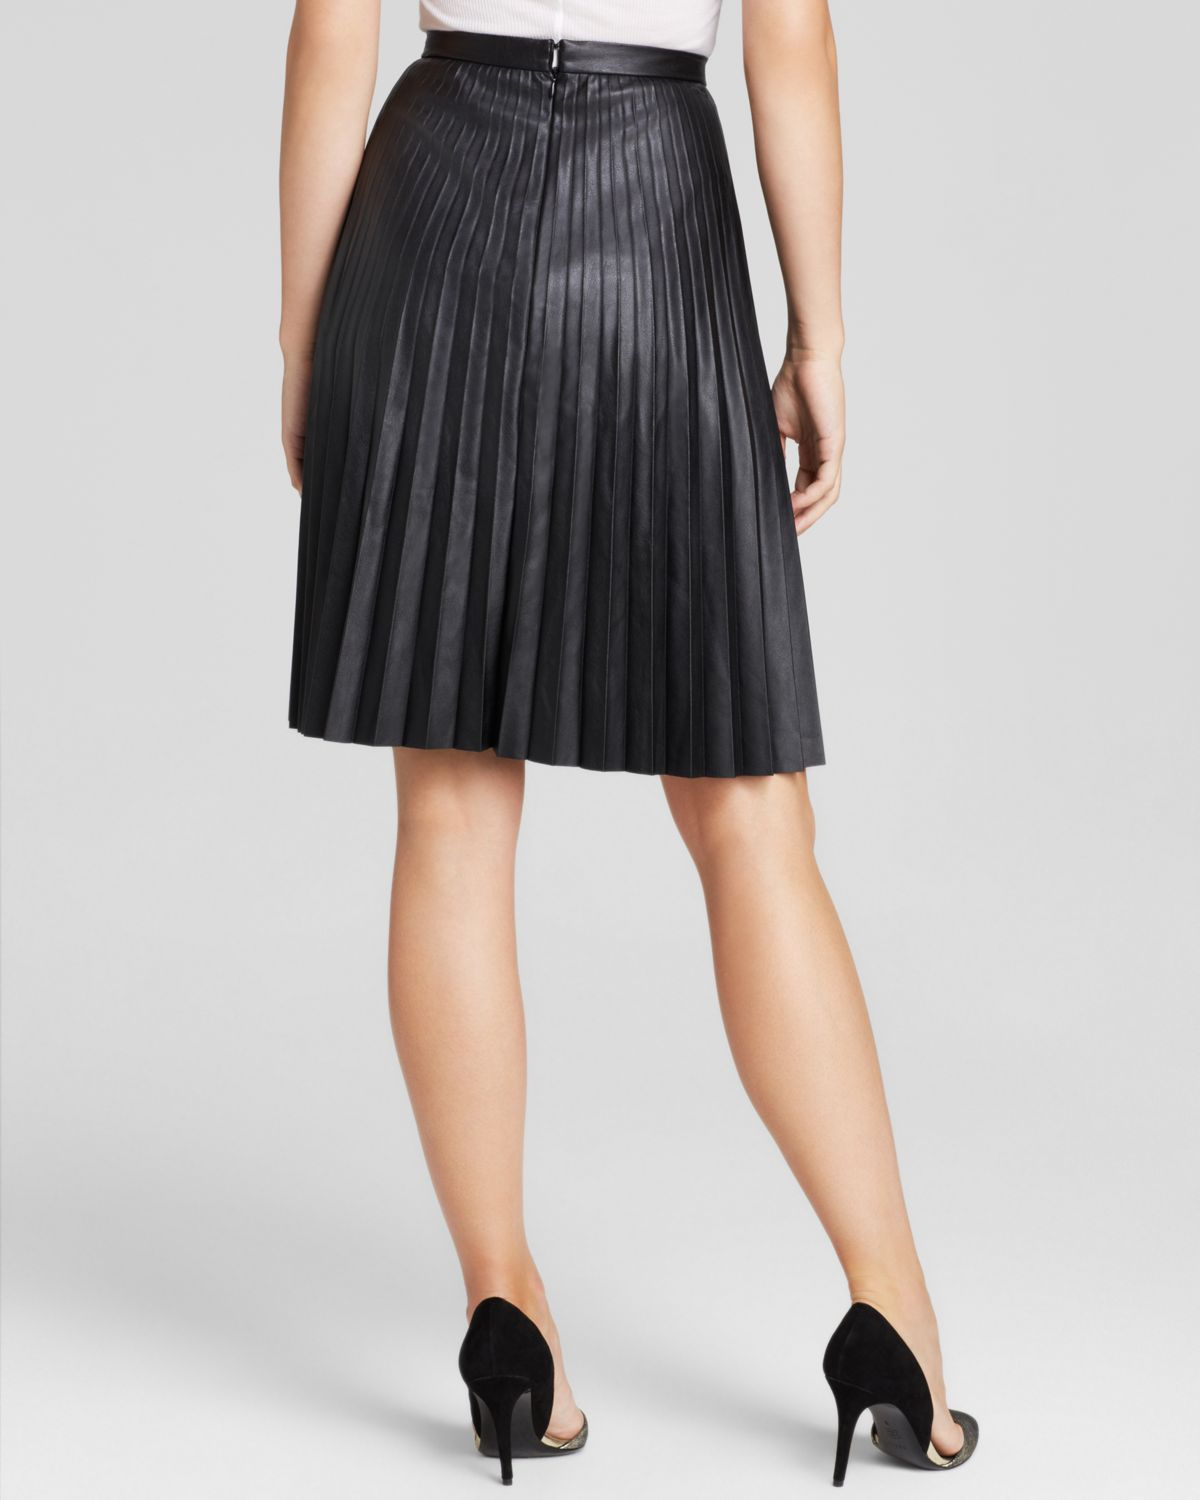 Calvin klein Faux Leather Pleated Skirt in Black | Lyst